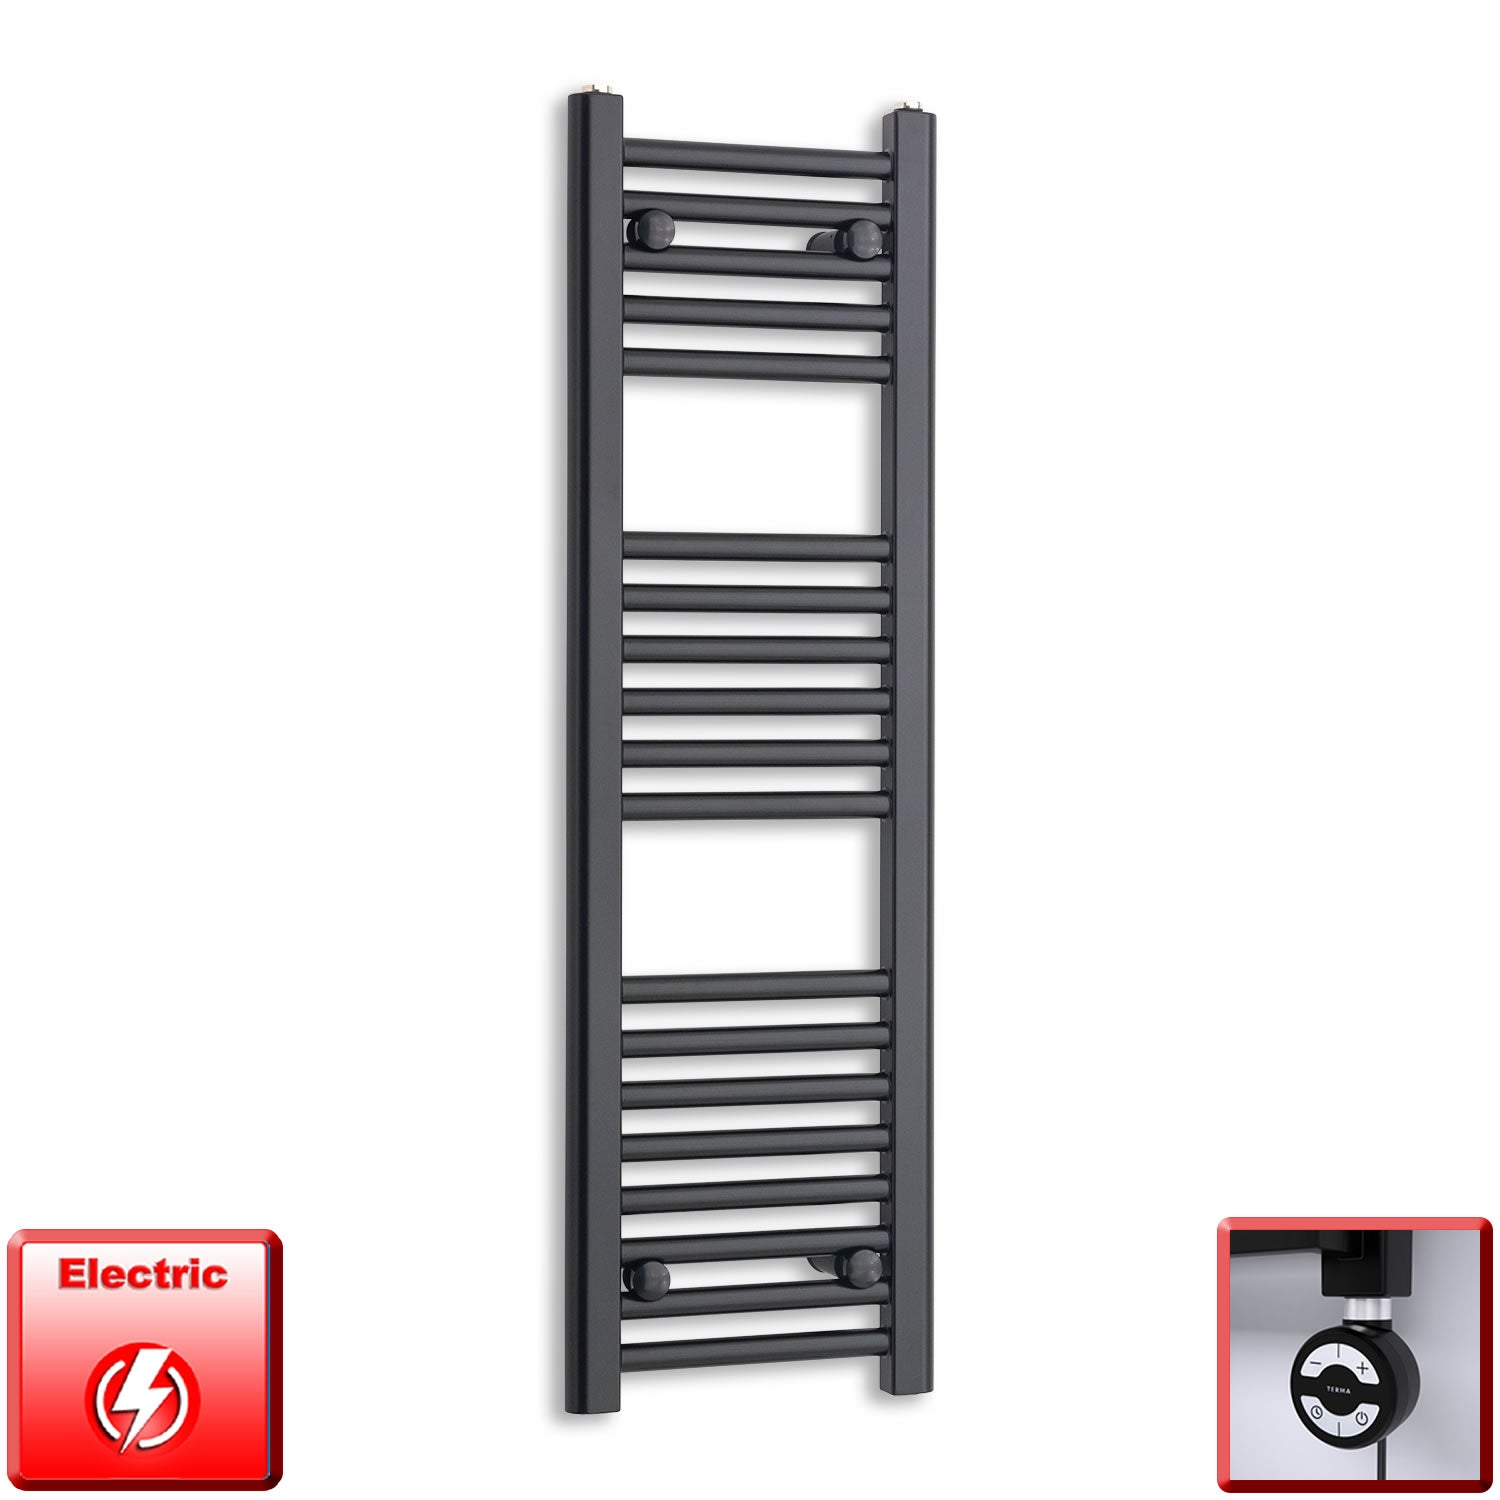 300mm Wide 1000mm High Pre-Filled Black Electric Towel Rail Radiator With Thermostatic MOA Element